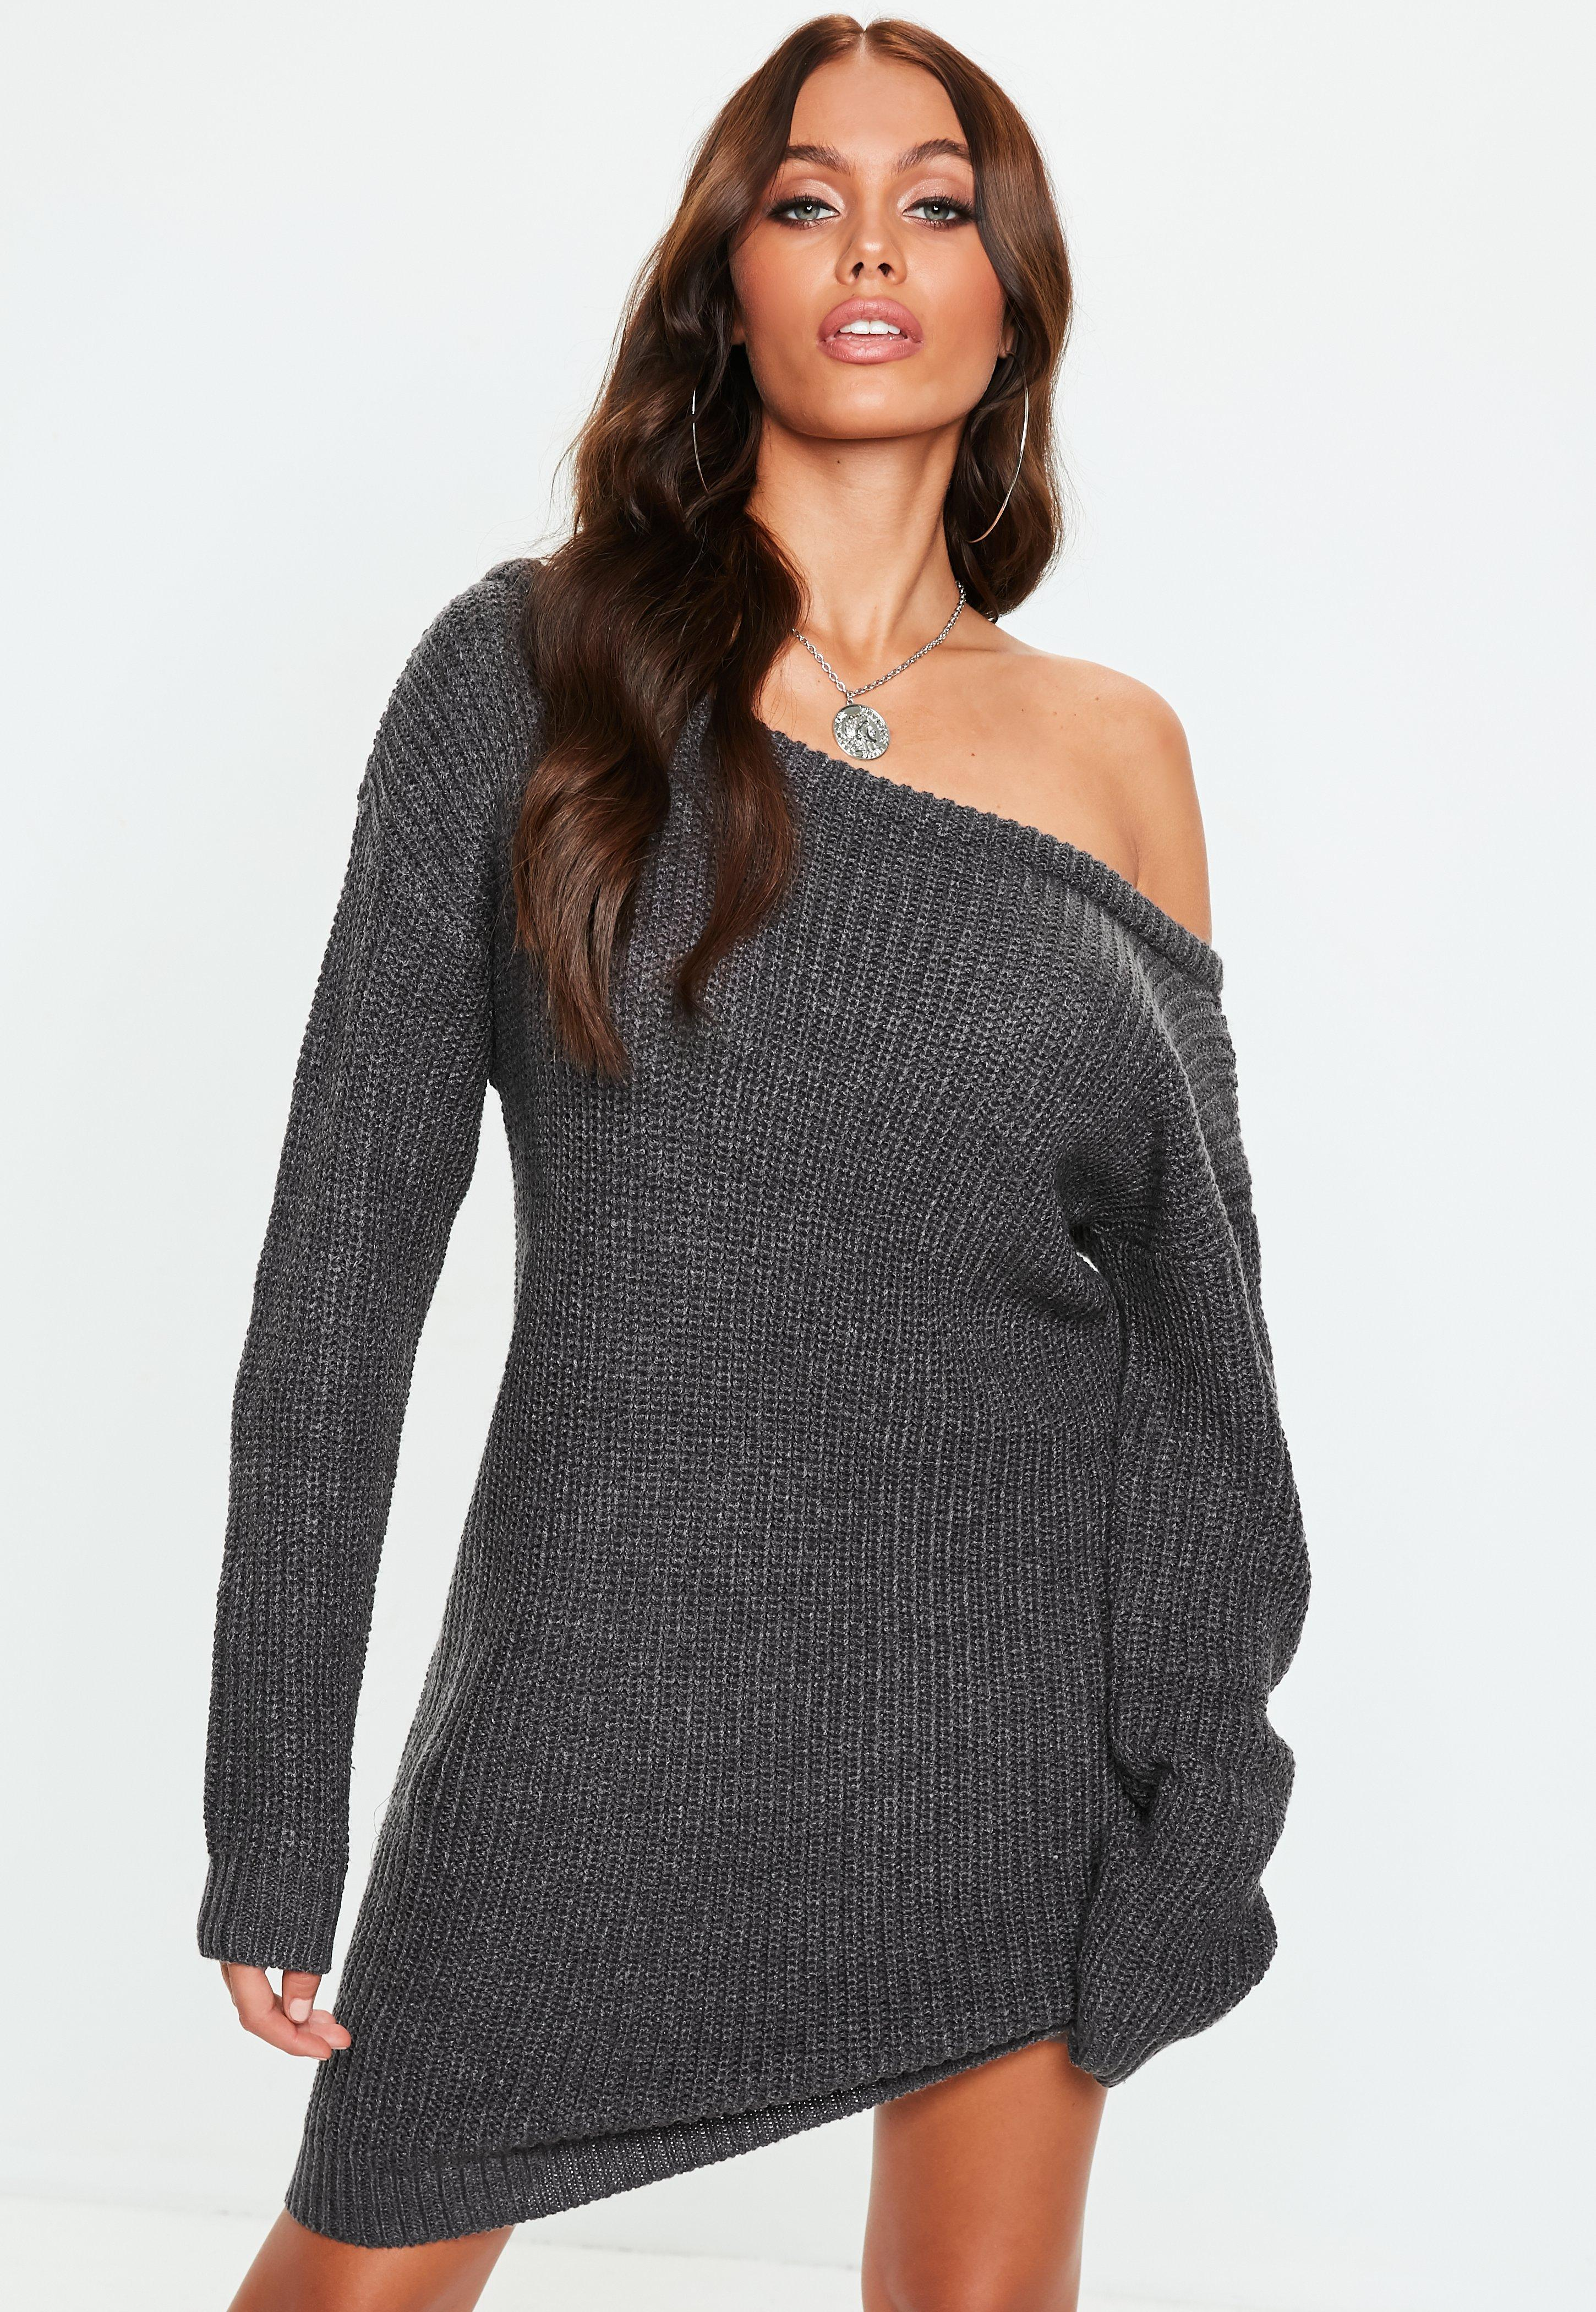 Sweater Dresses - Oversized Knitted Dresses   Missguided